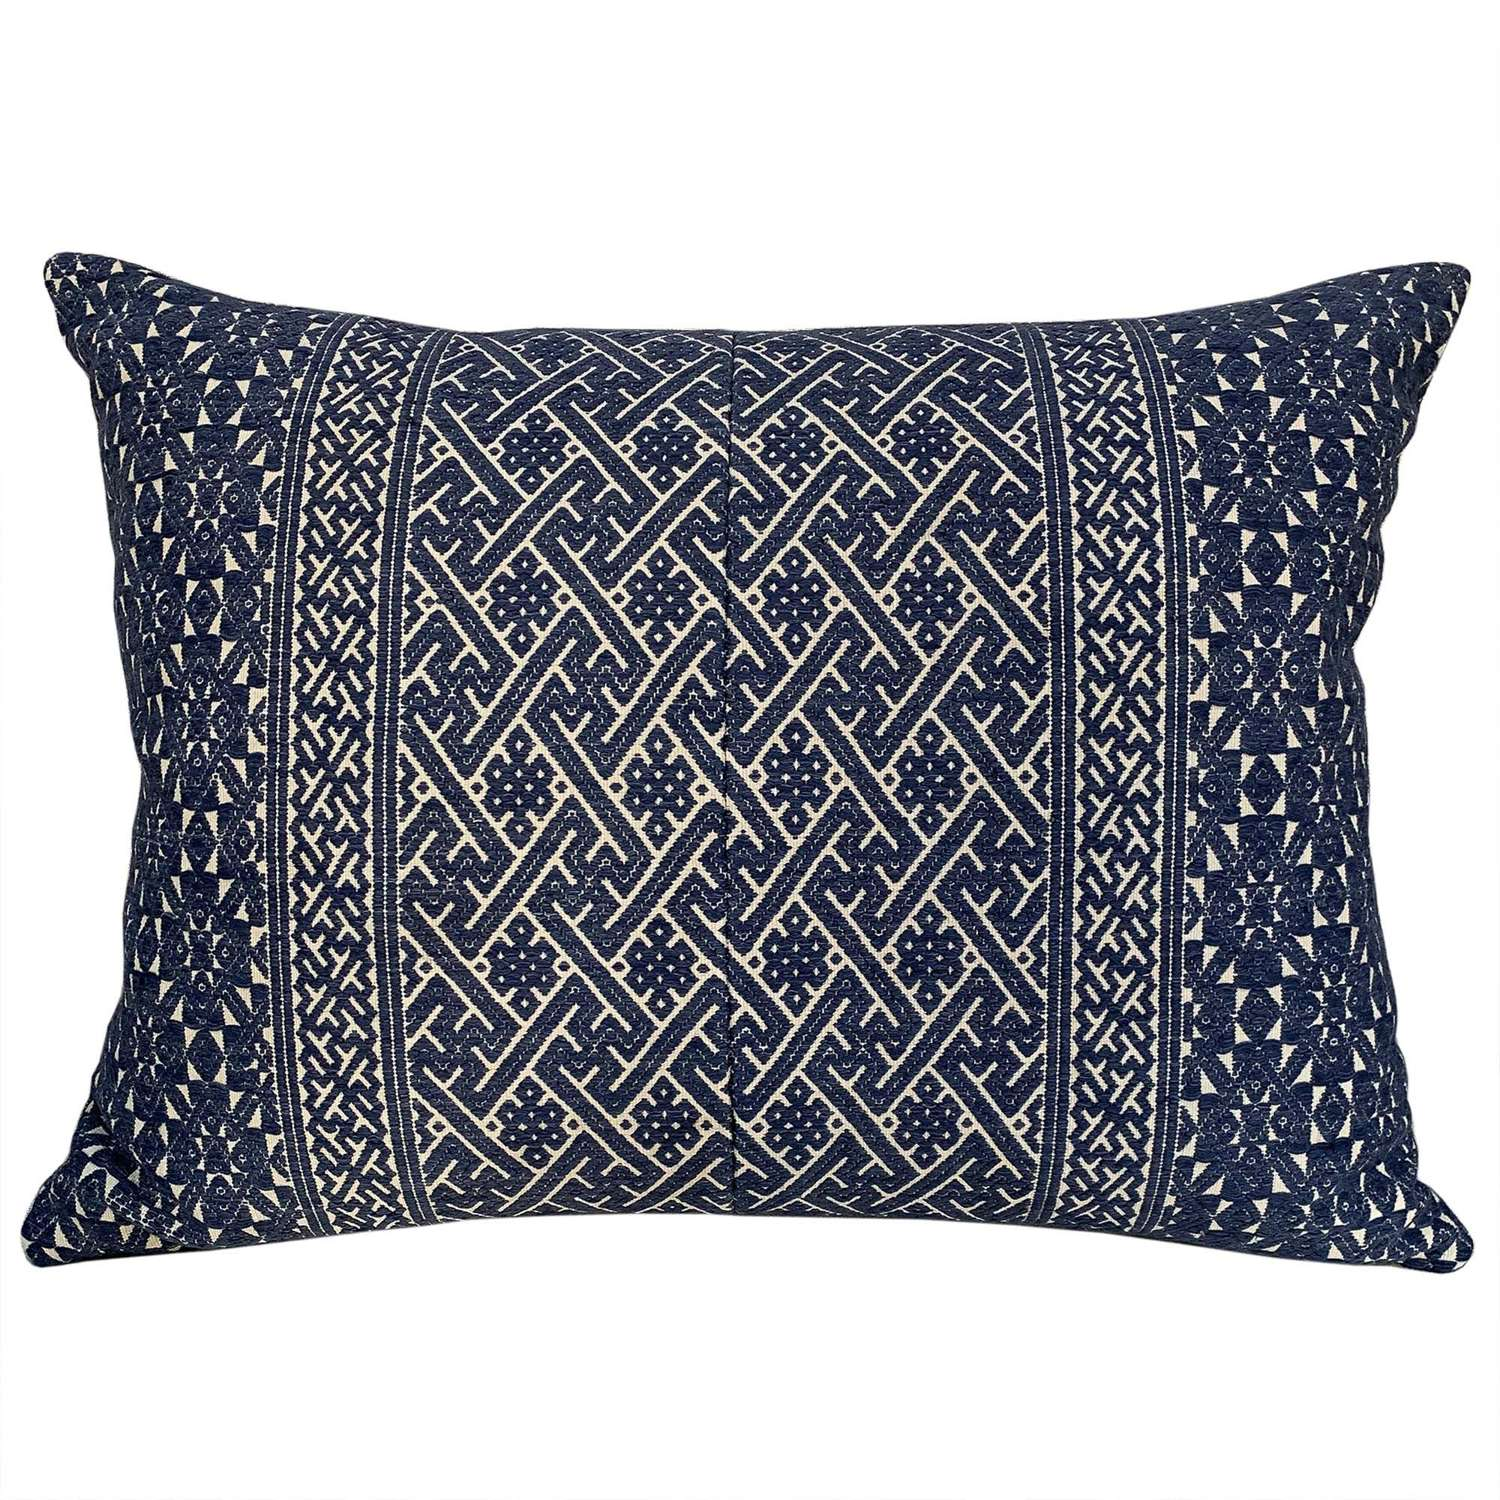 Blue Zhuang wedding blanket cushions